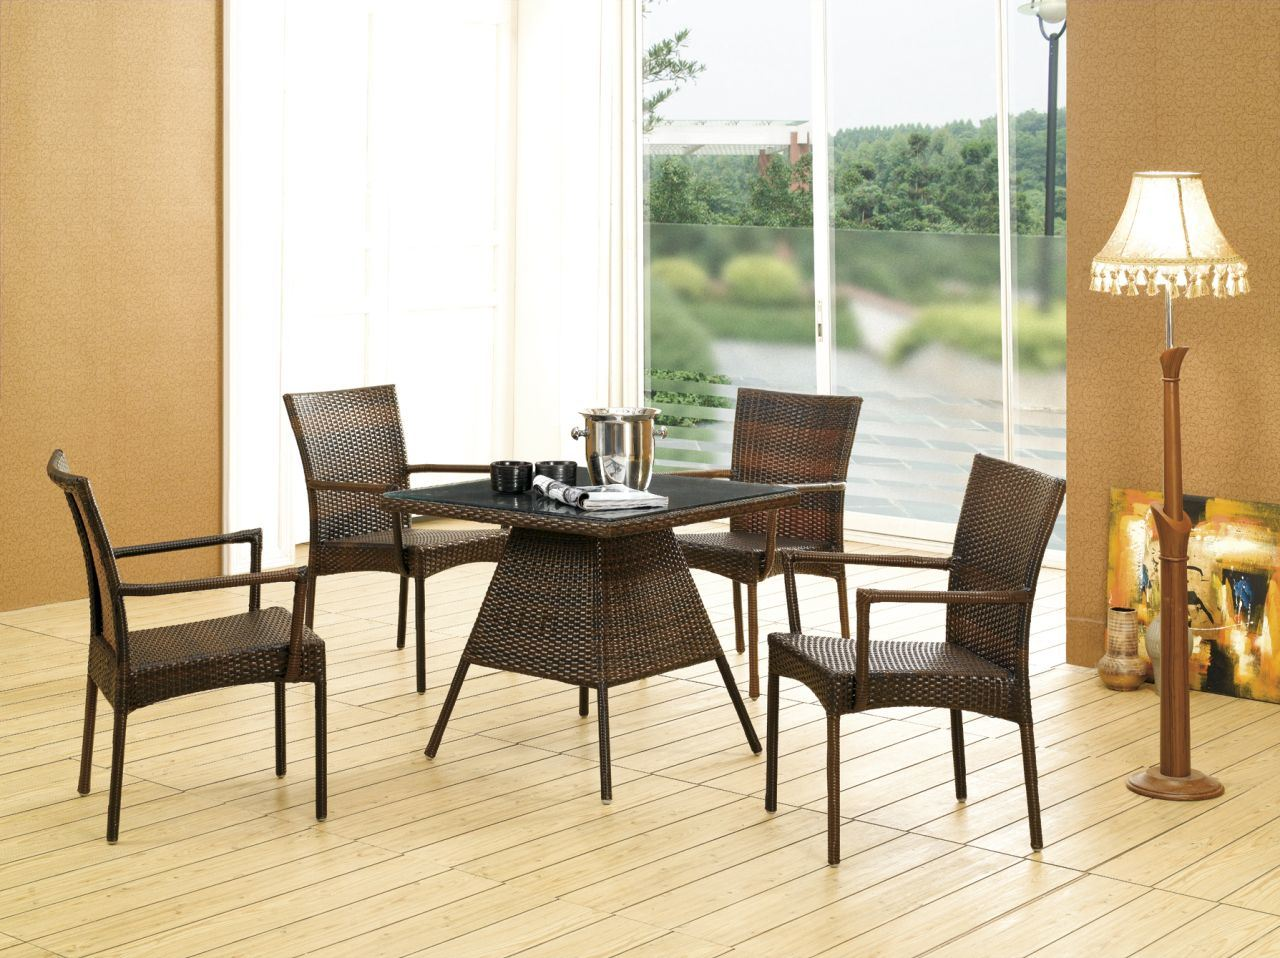 Rattan Dinette, Rattan, Tables, Wicker Tables  Chairs, Glass Top